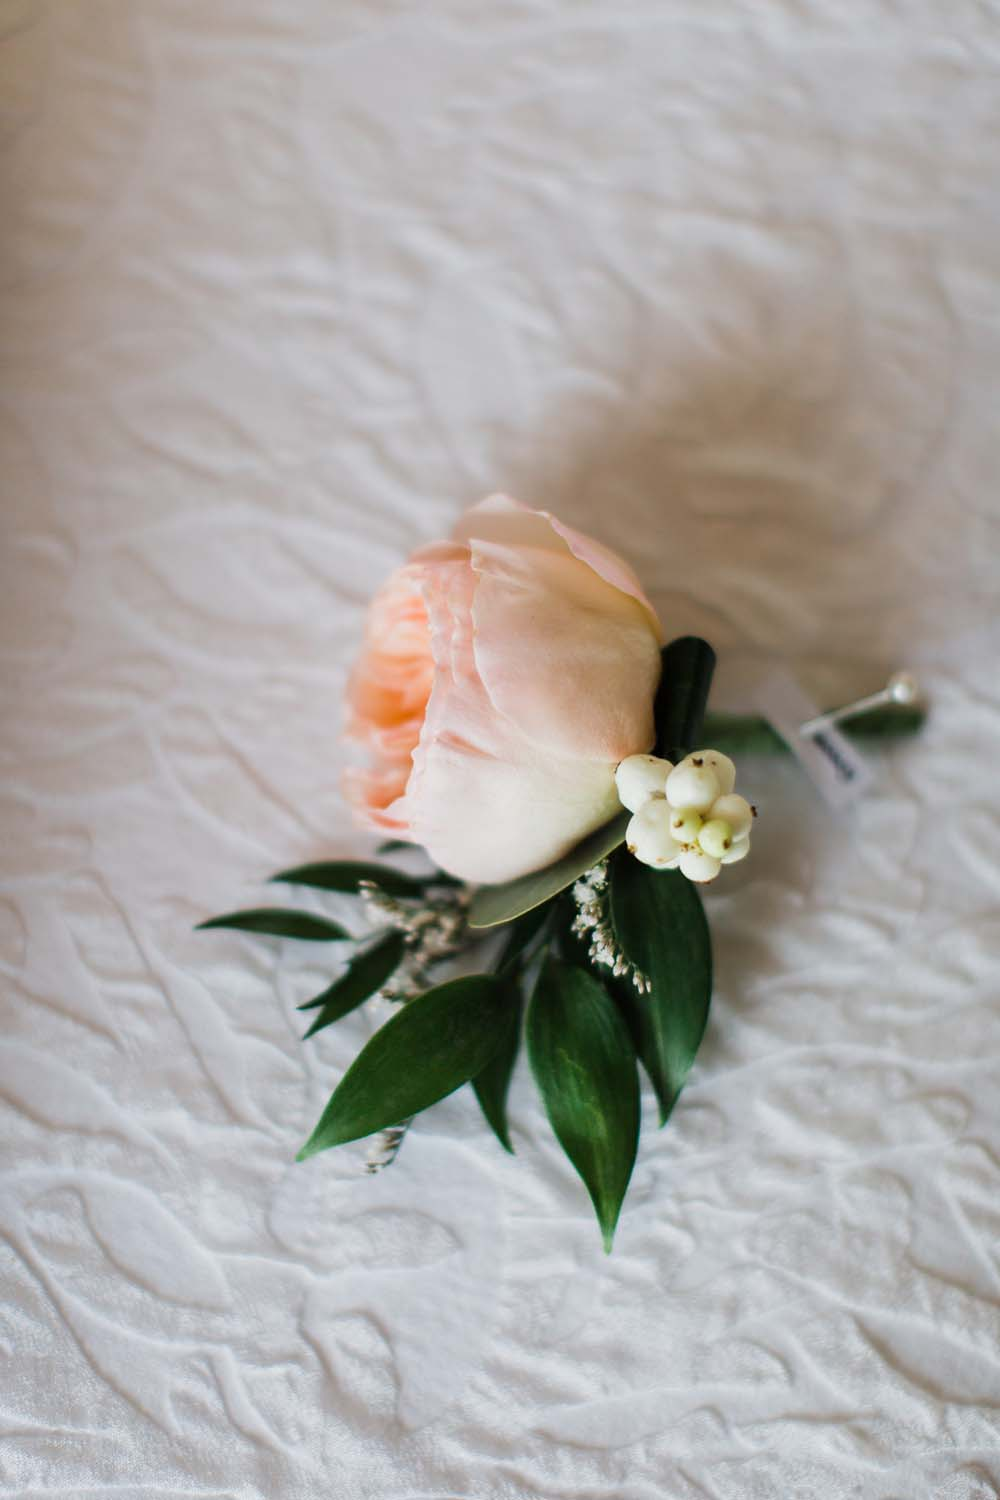 A Rustic, Whimsical Wedding in Tottenham - Boutonniere